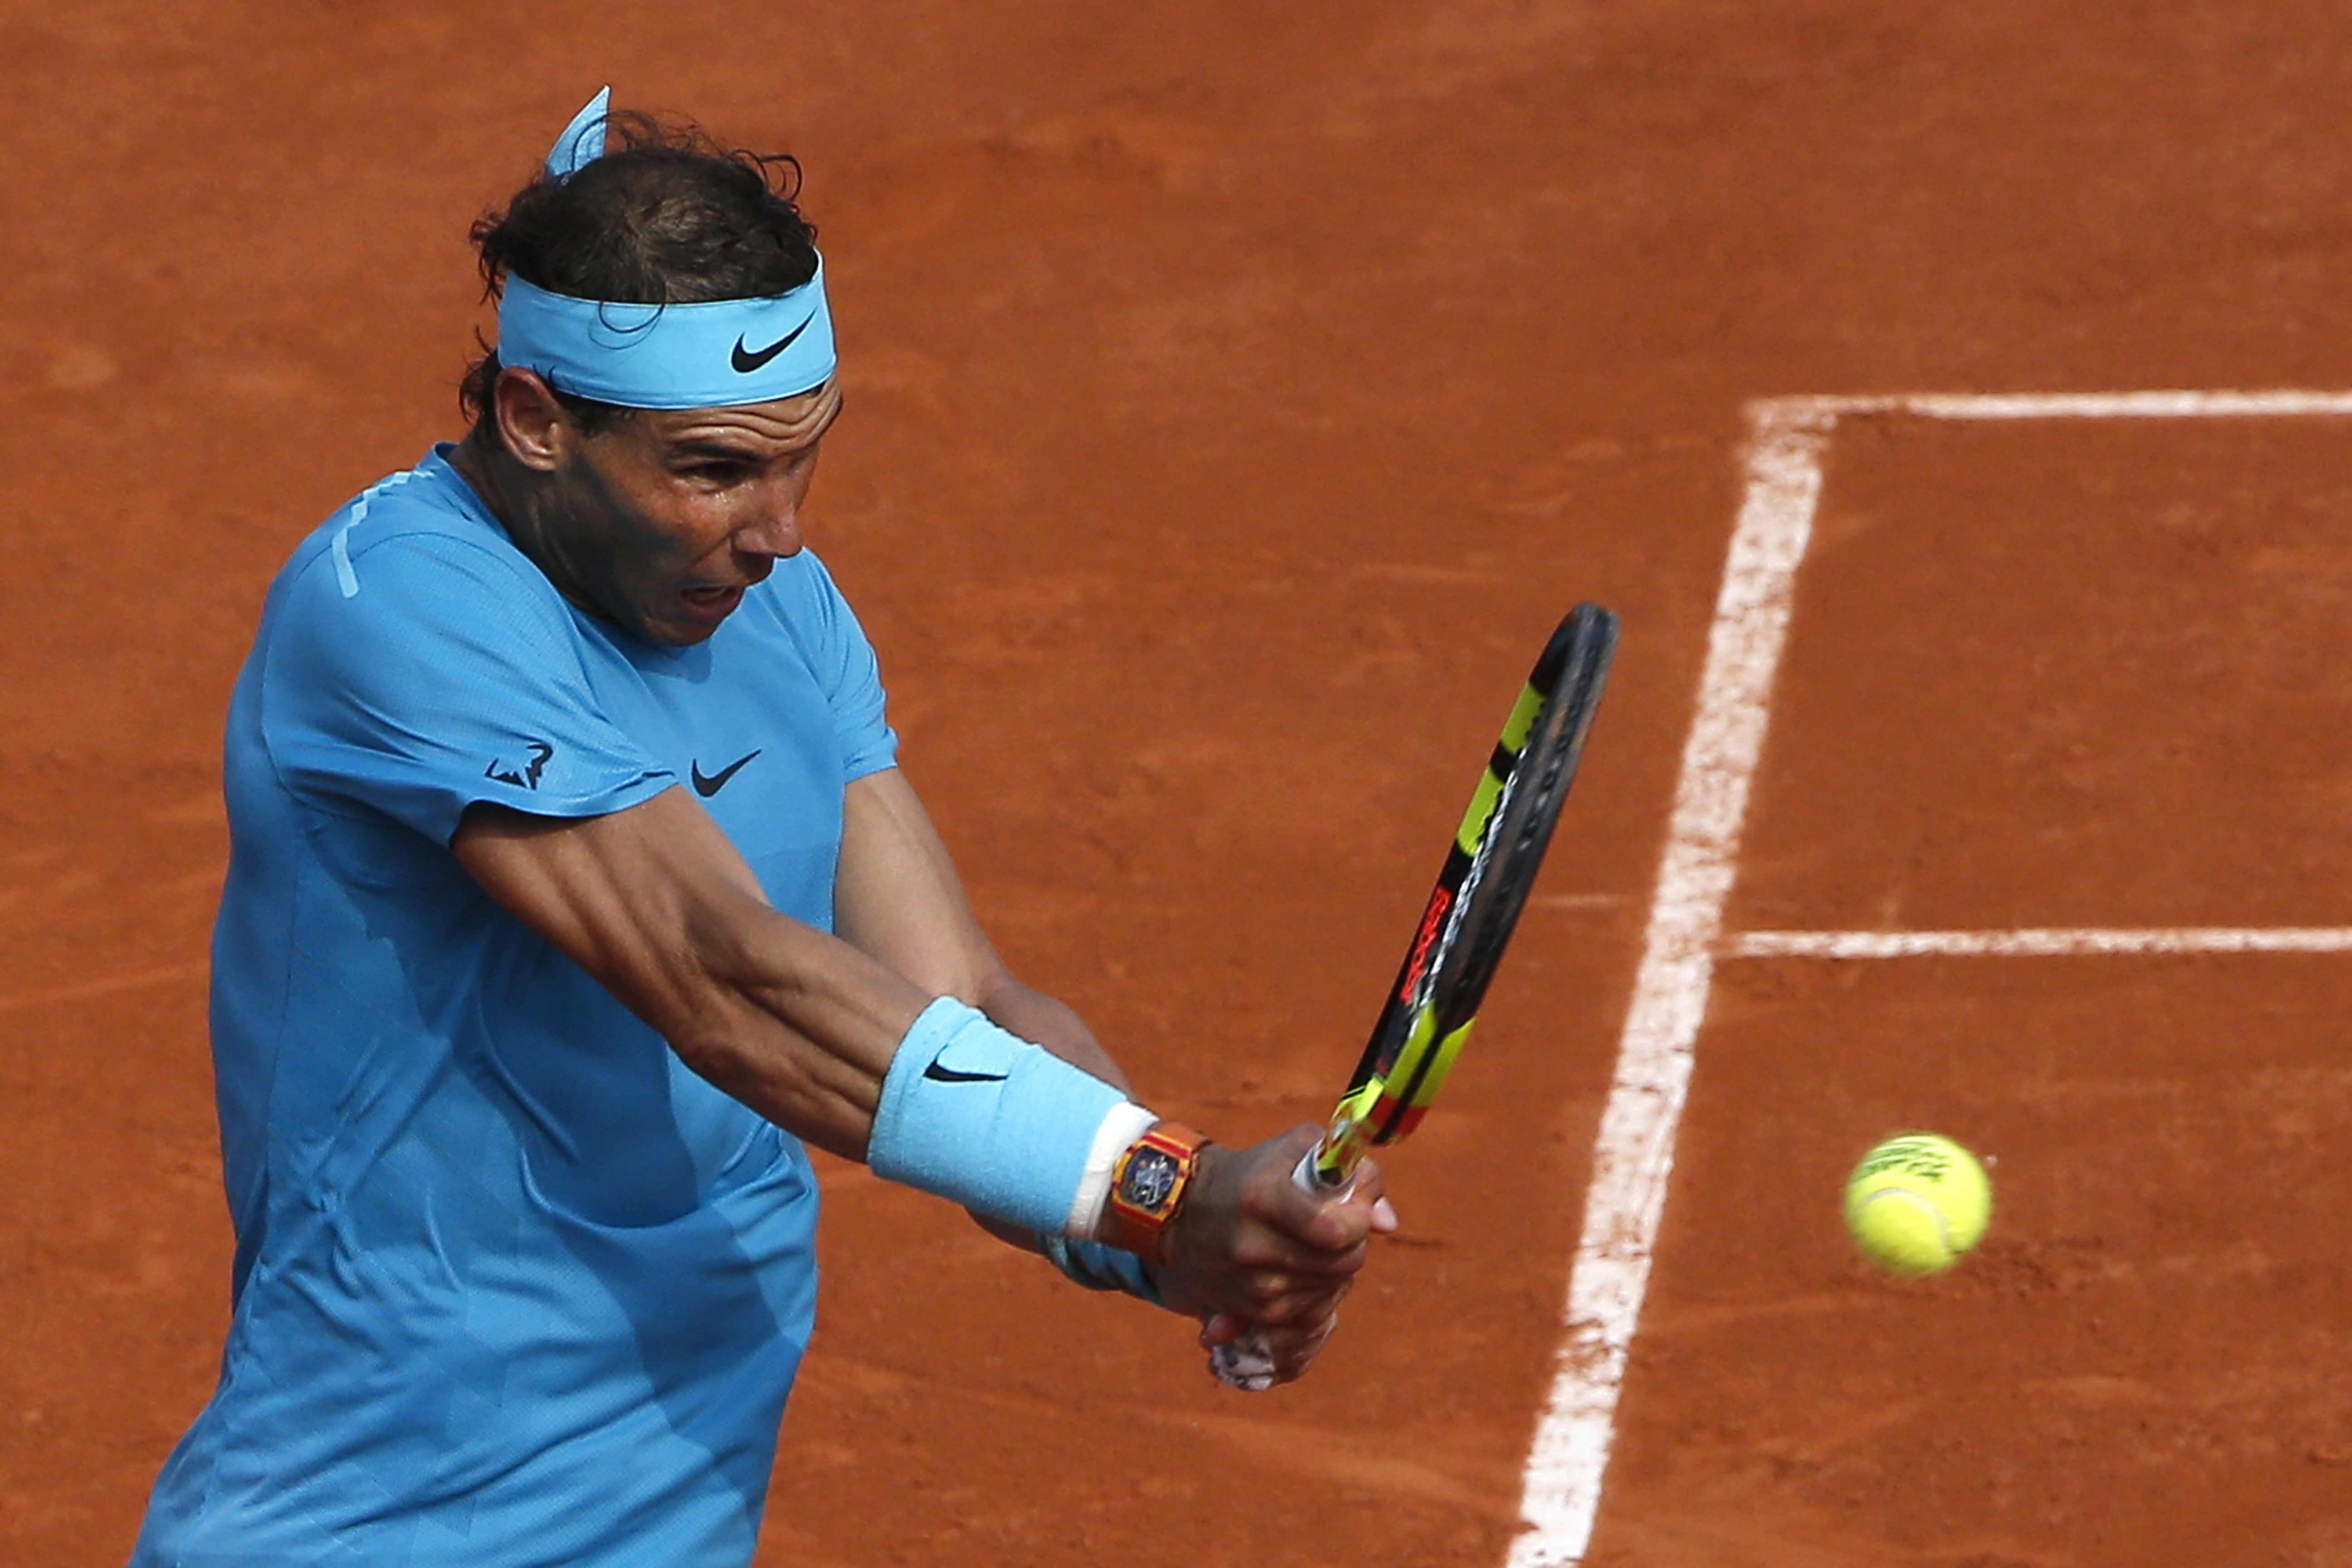 Nadal in action. Image: PA